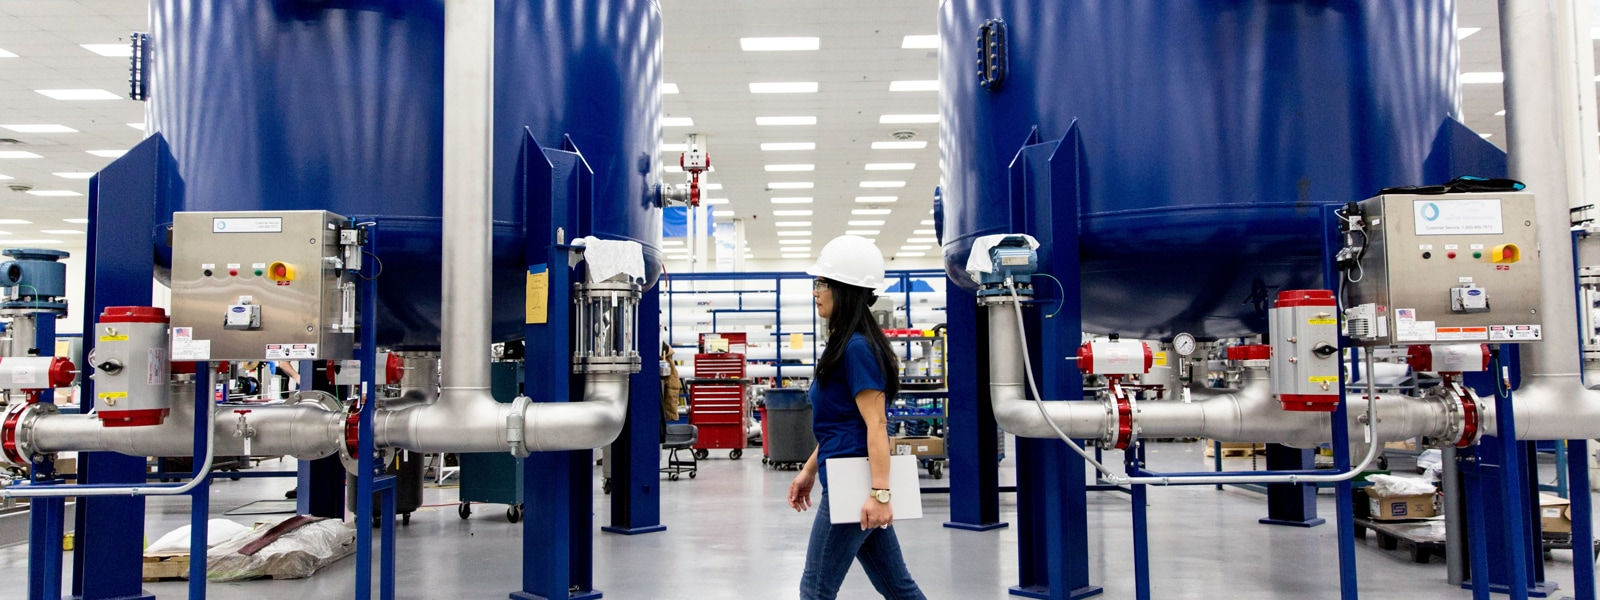 Woman in hard hat walking in manufacturing building